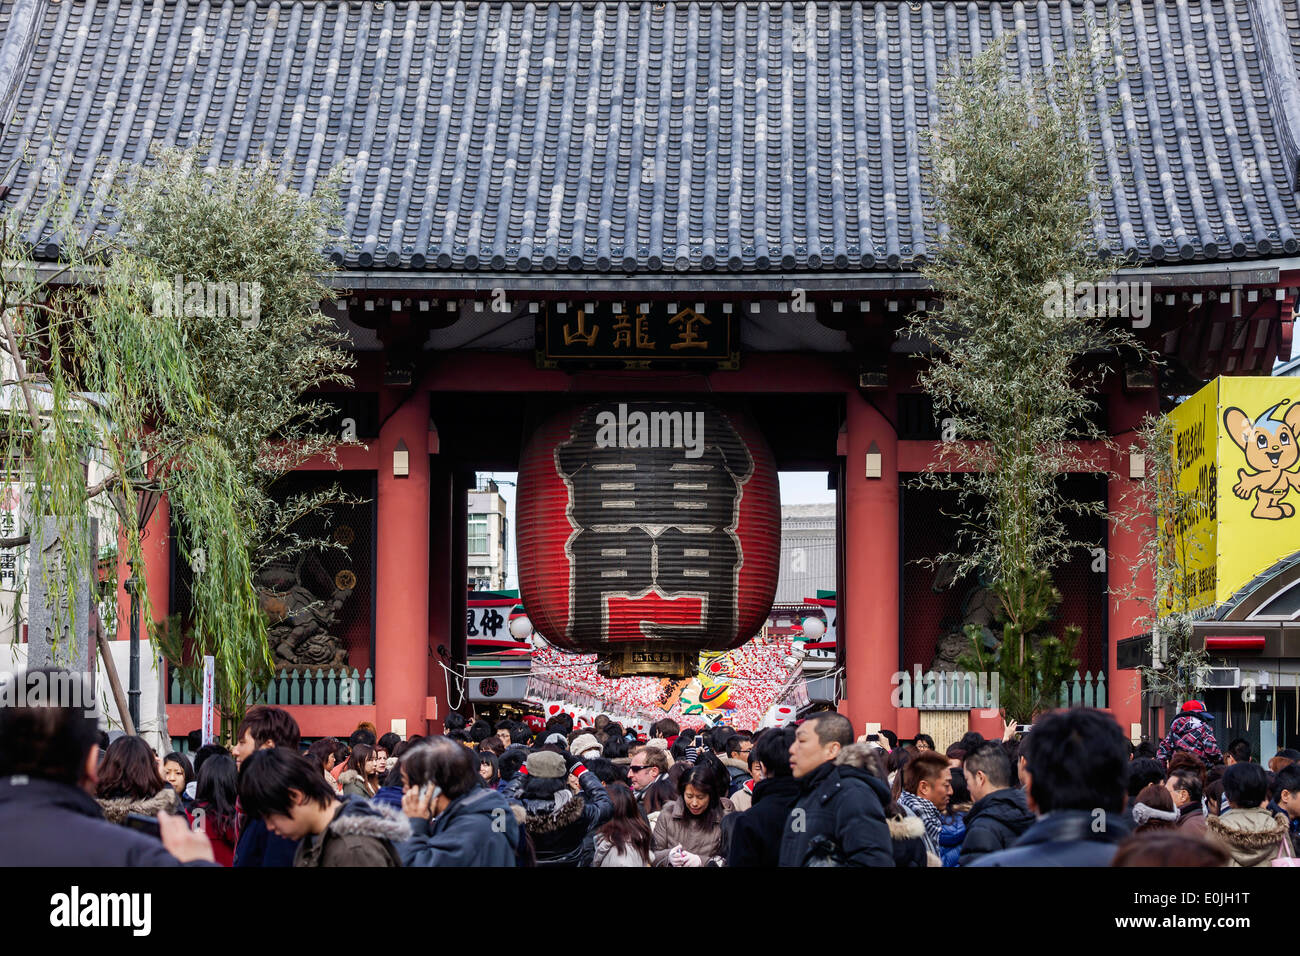 Crowds at Sensoji Temple in Japan - Stock Image